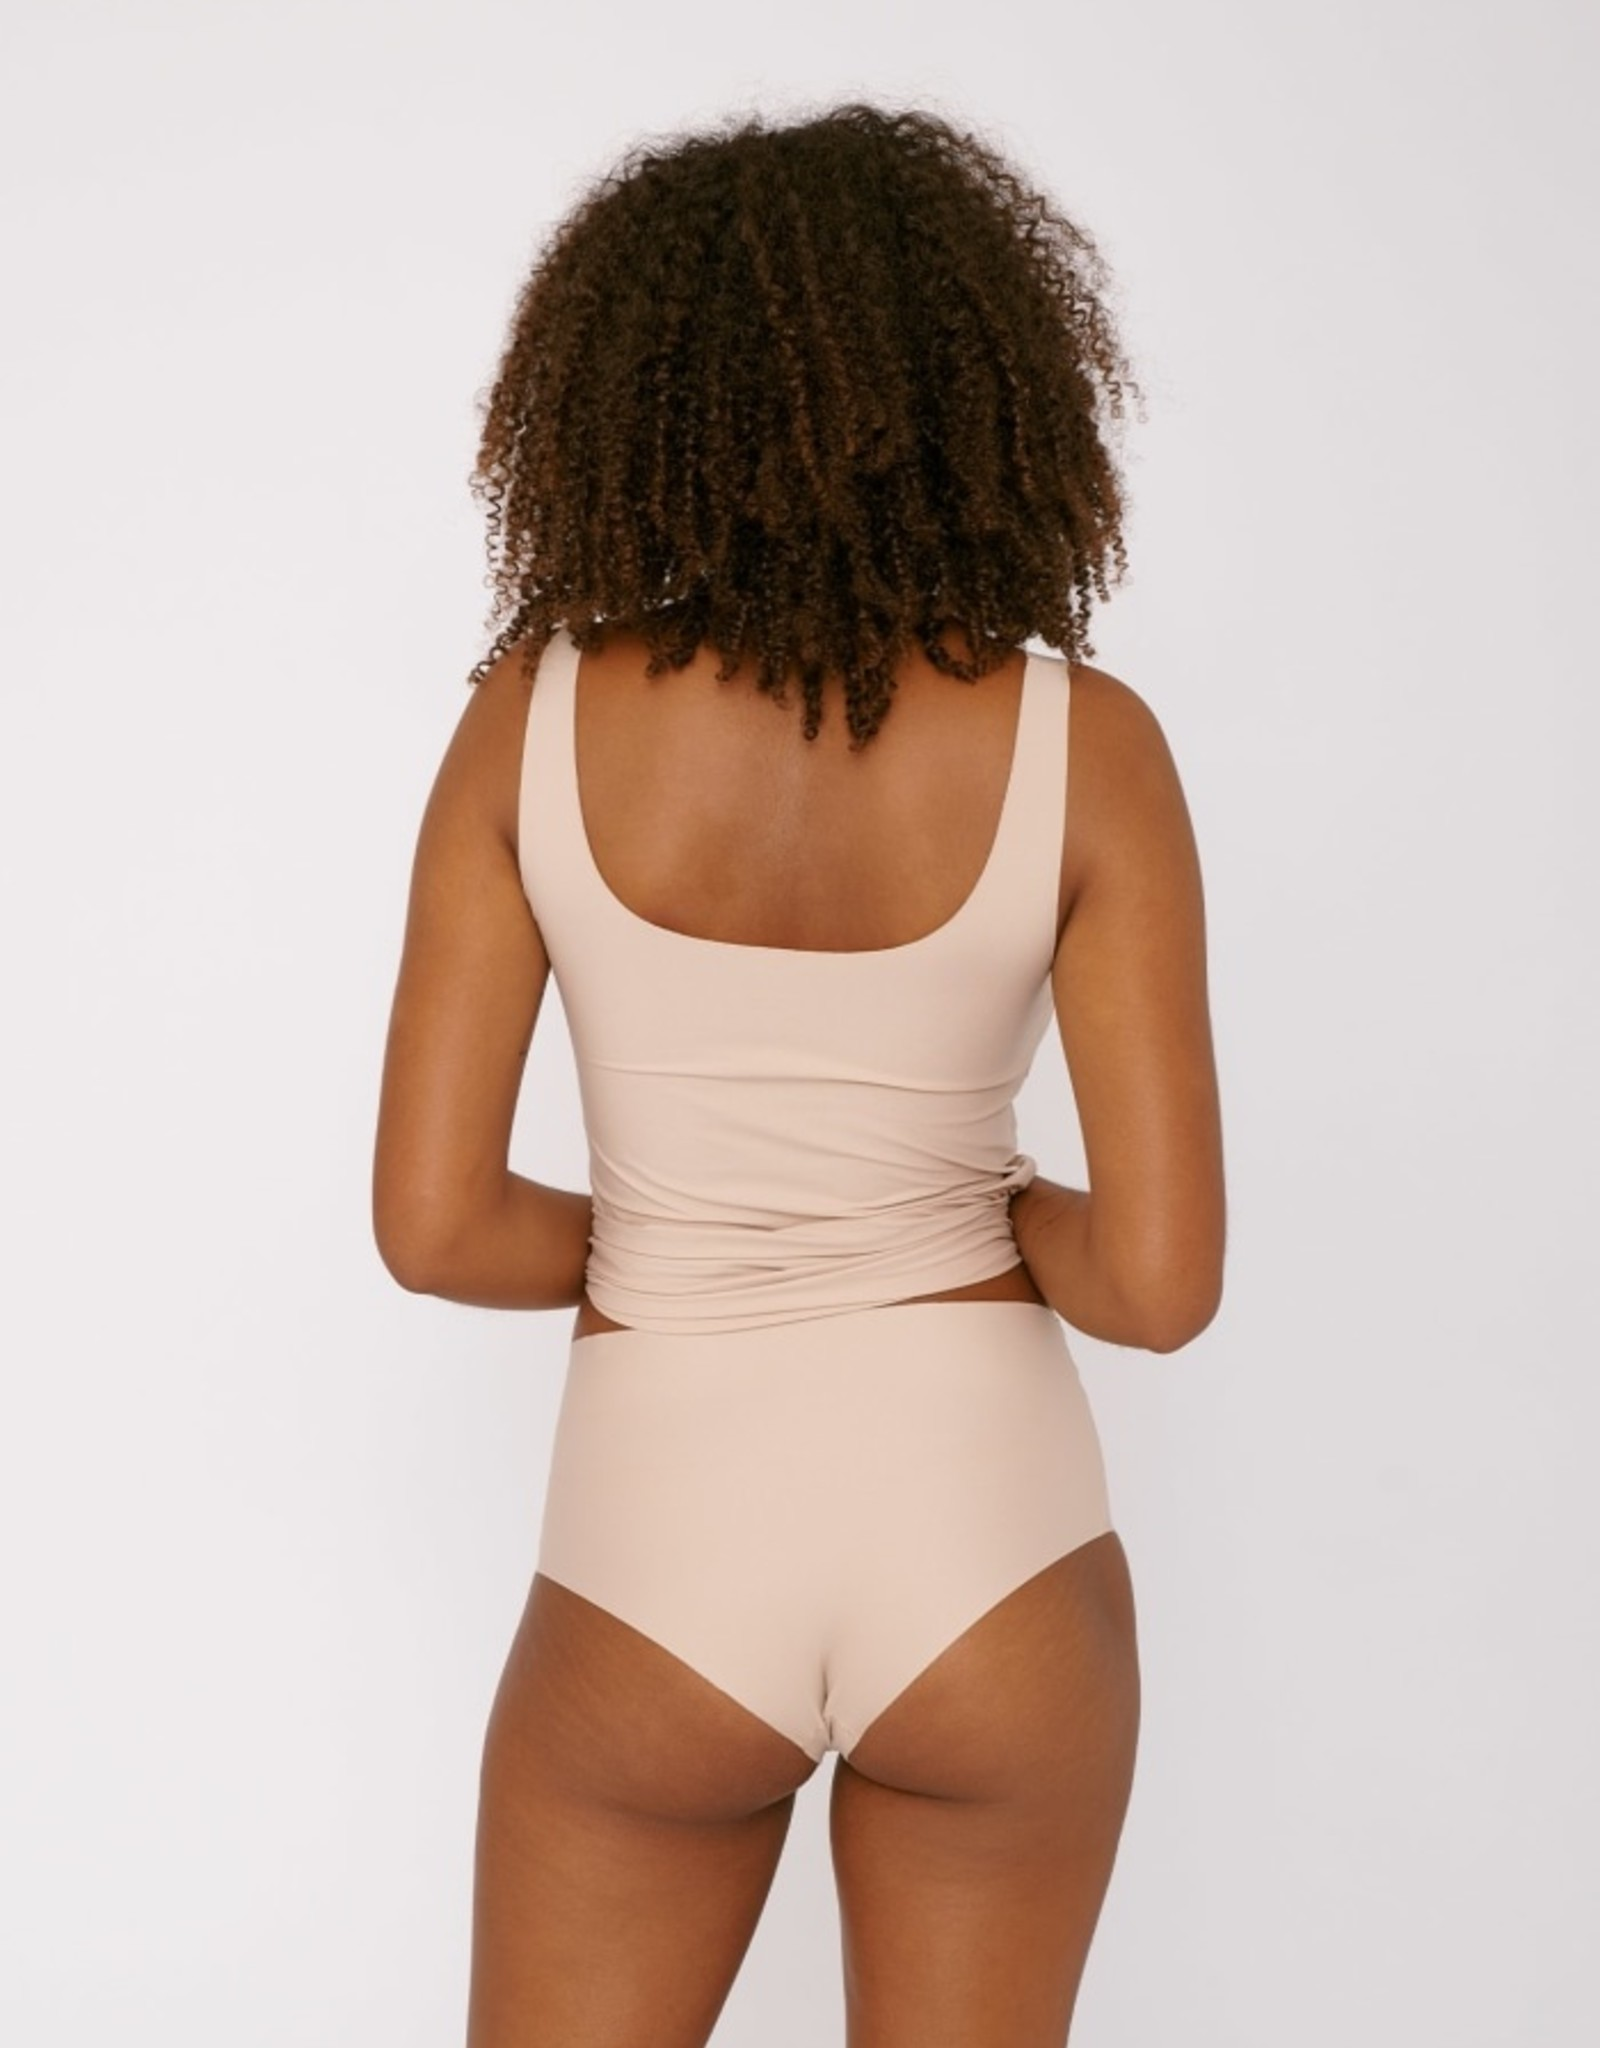 Organic Basics Invisible Cheeky High rise - 2 pack